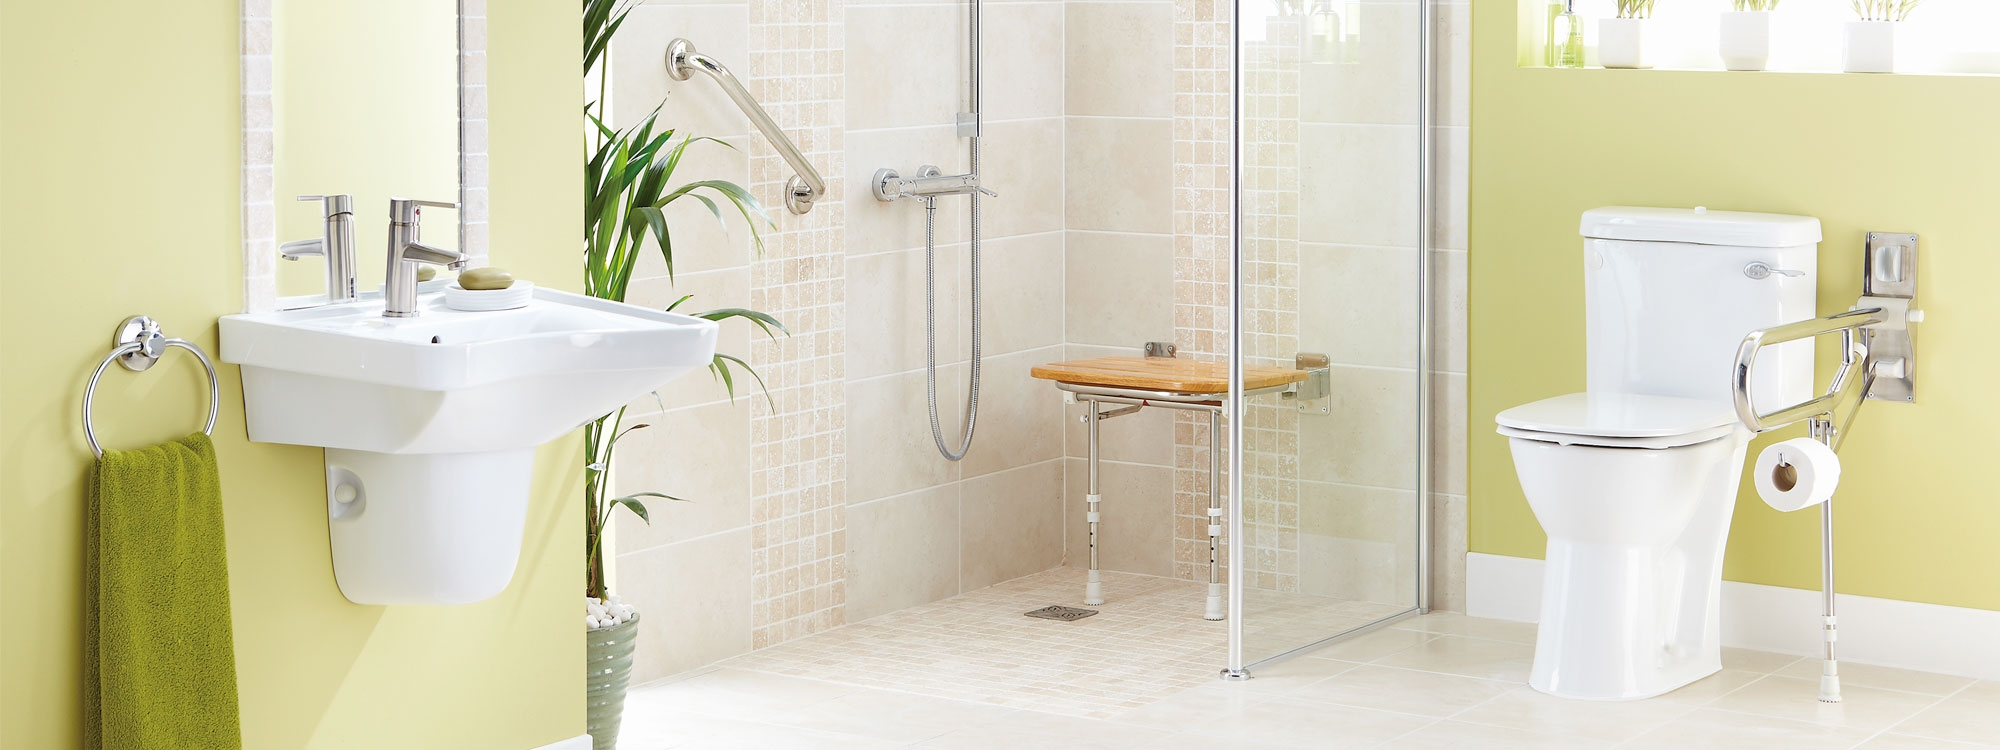 Safe practical bathrooms designed fit by more ability for Bathroom designs for seniors